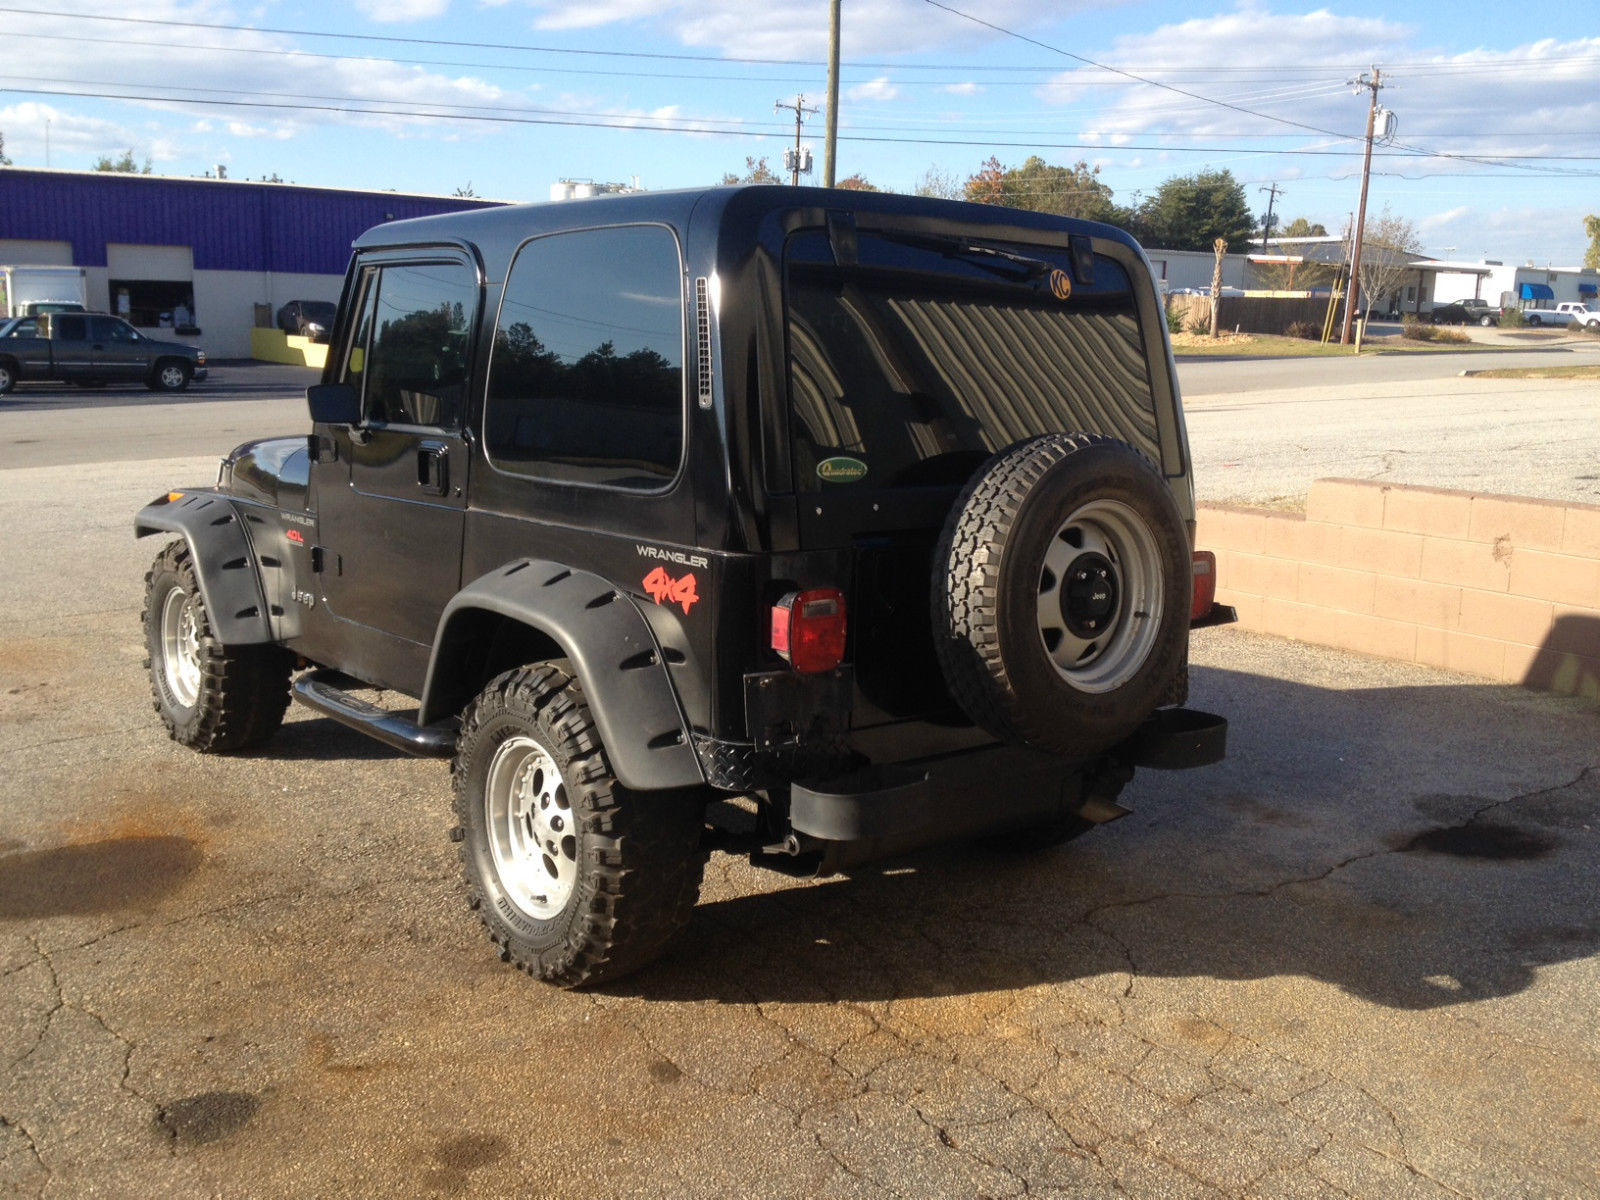 92 Jeep Wrangler with hard top runs and drives